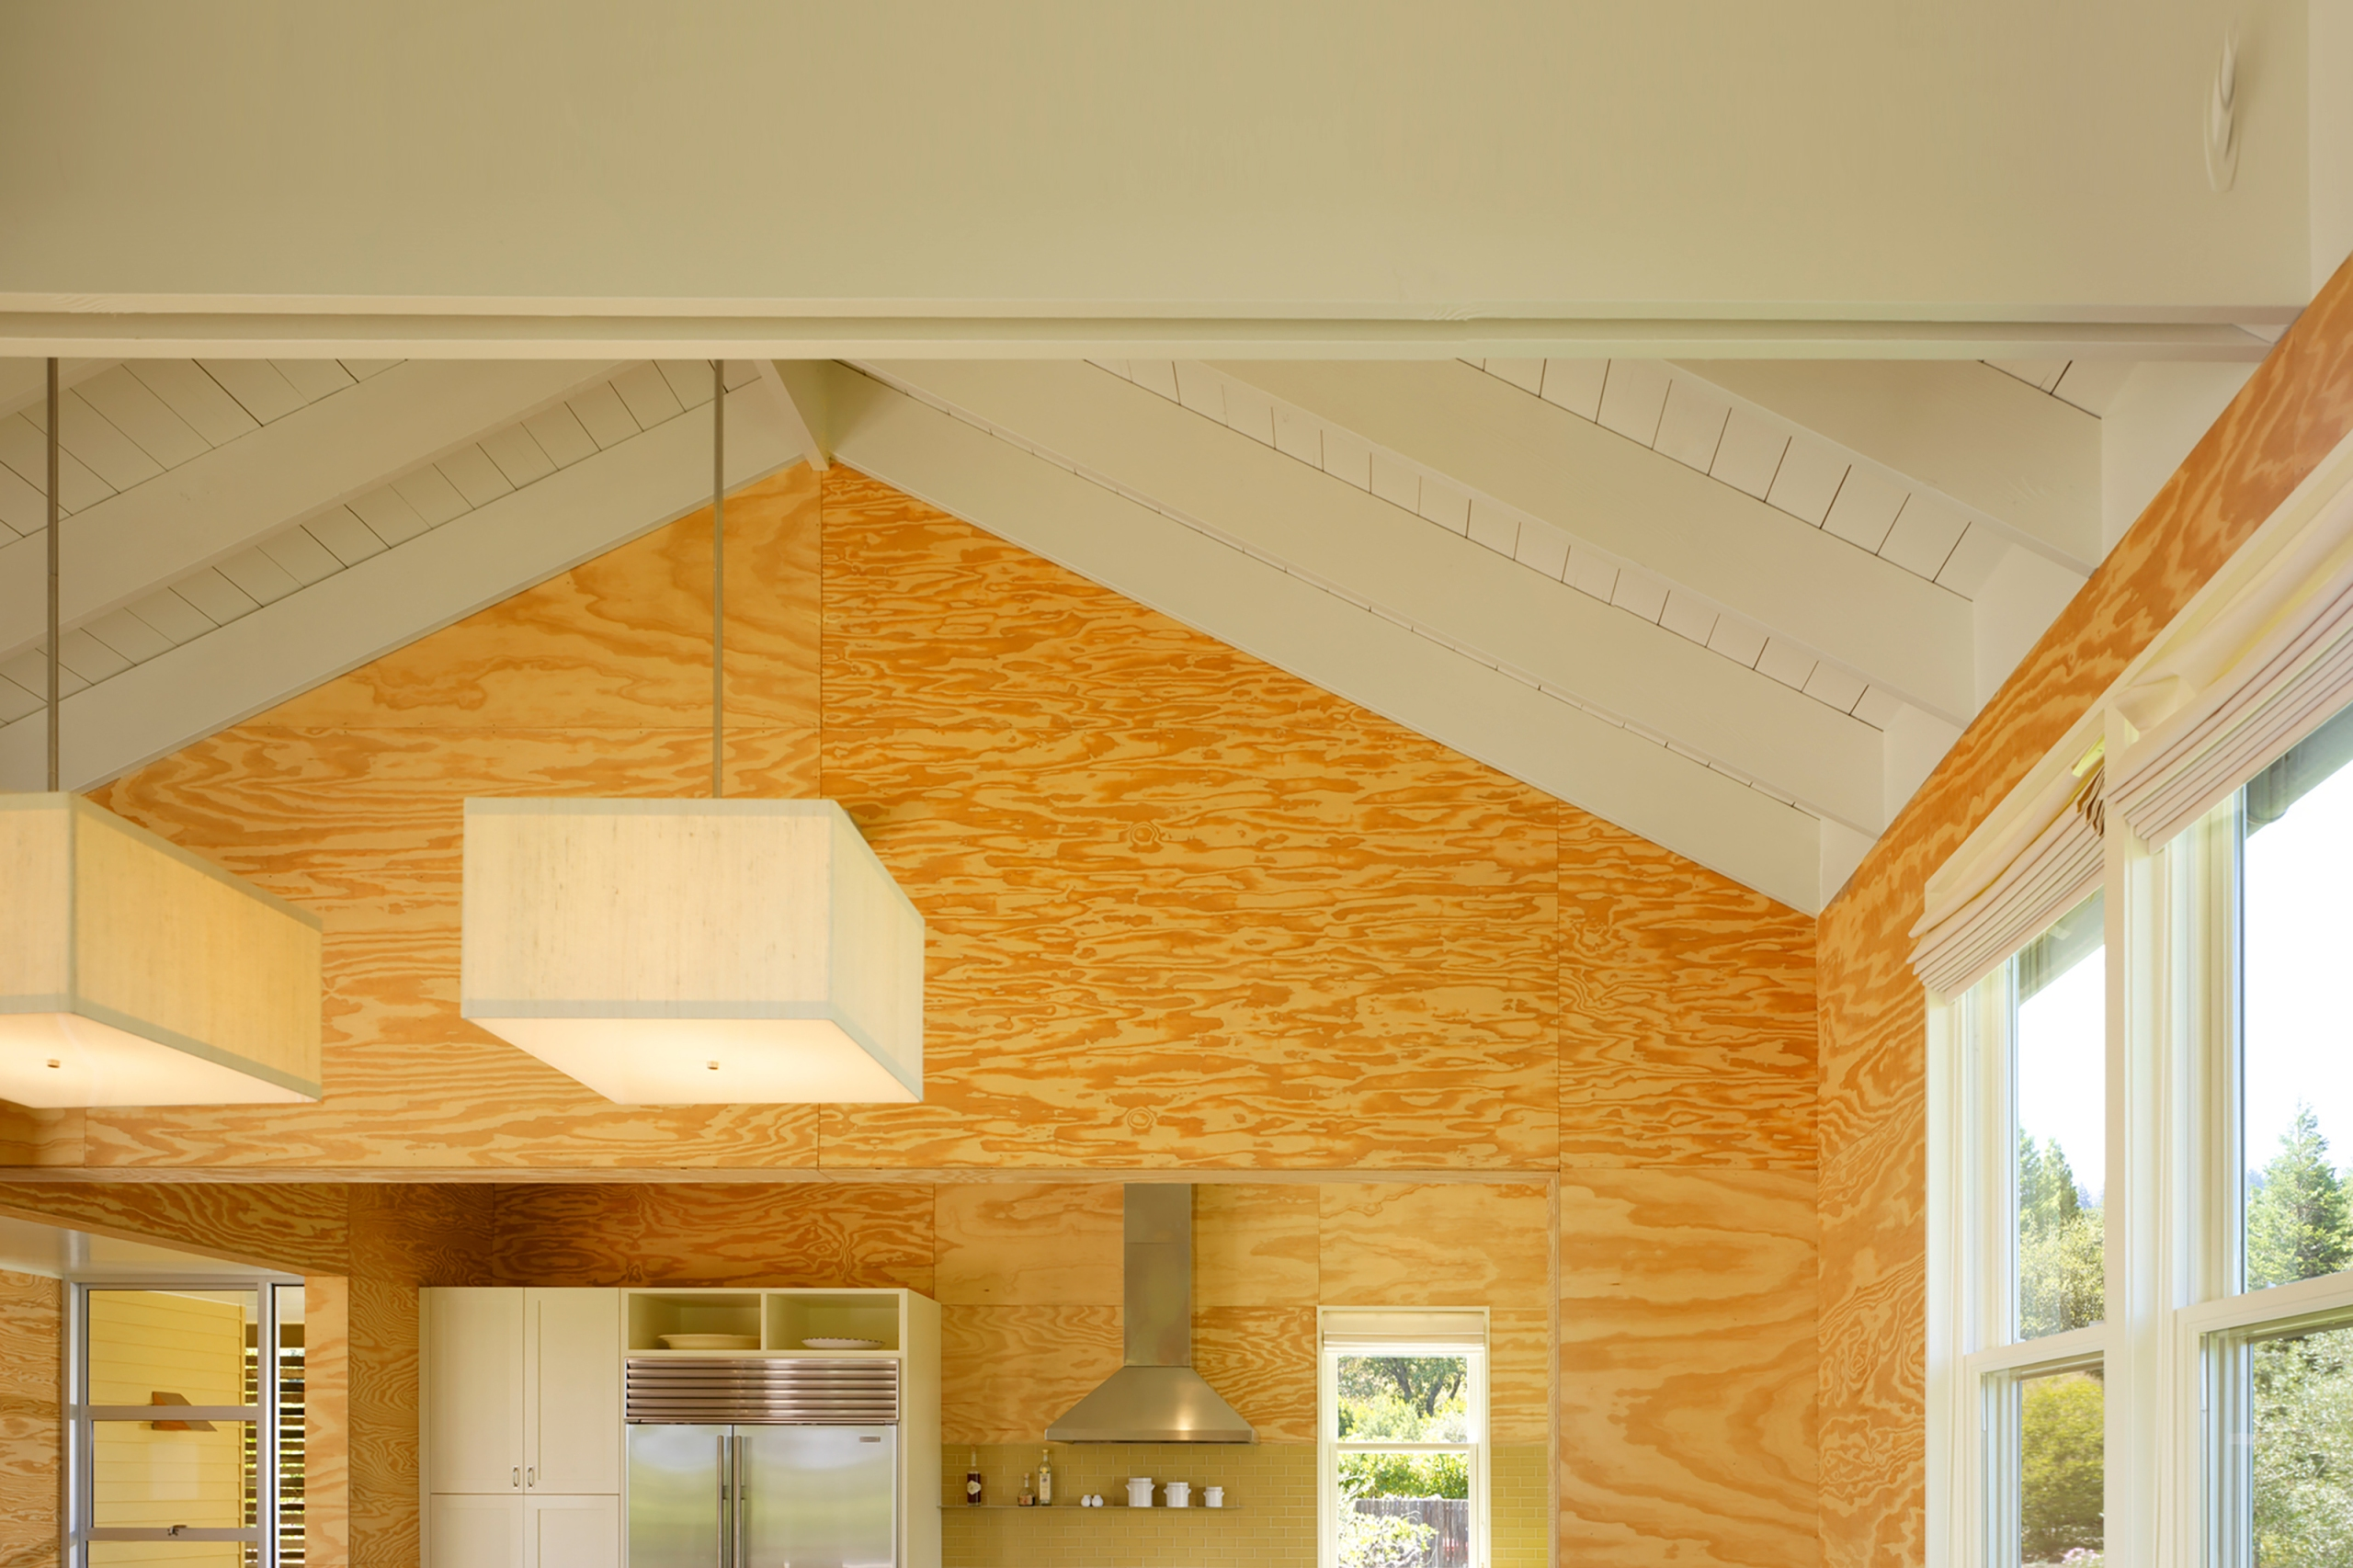 Vaulted ceiling in a modern home